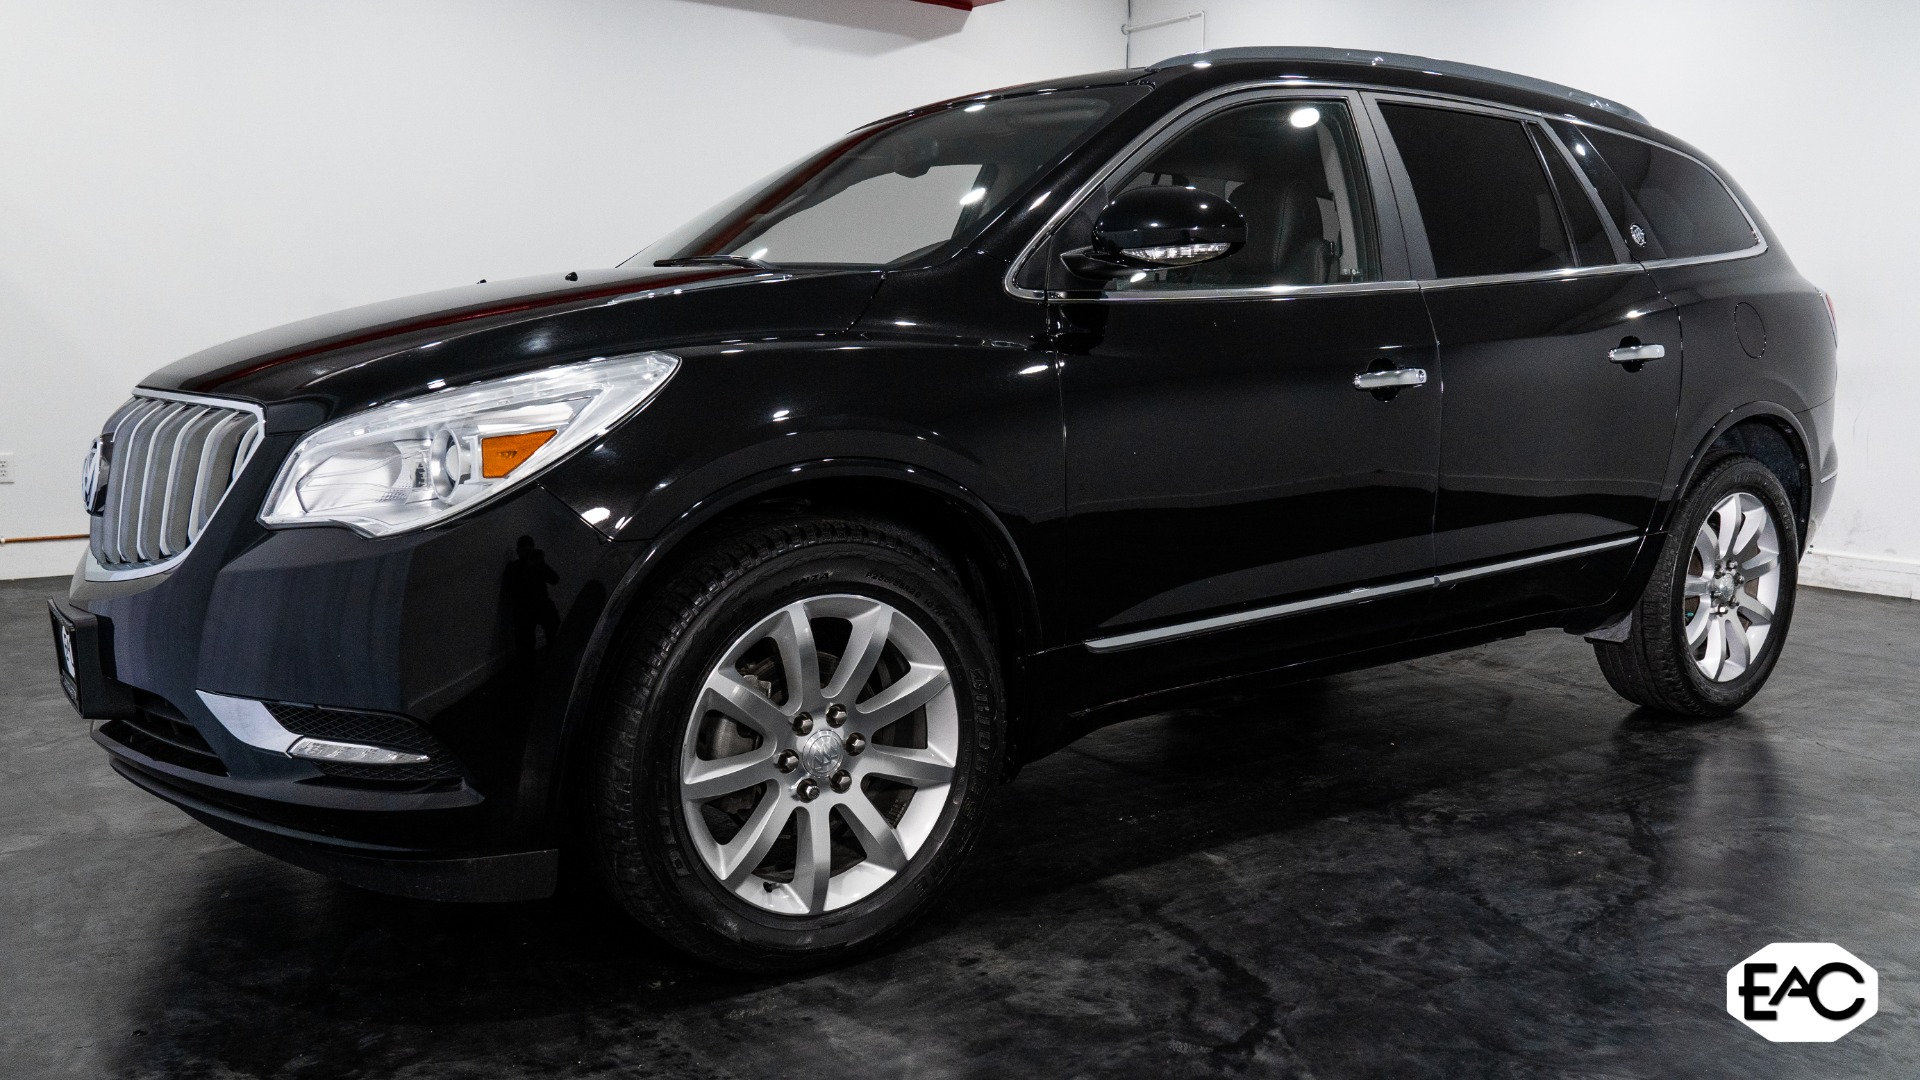 Used 2017 Buick Enclave Premium for sale $28,100 at Empire Auto Collection in Warren MI 48091 1